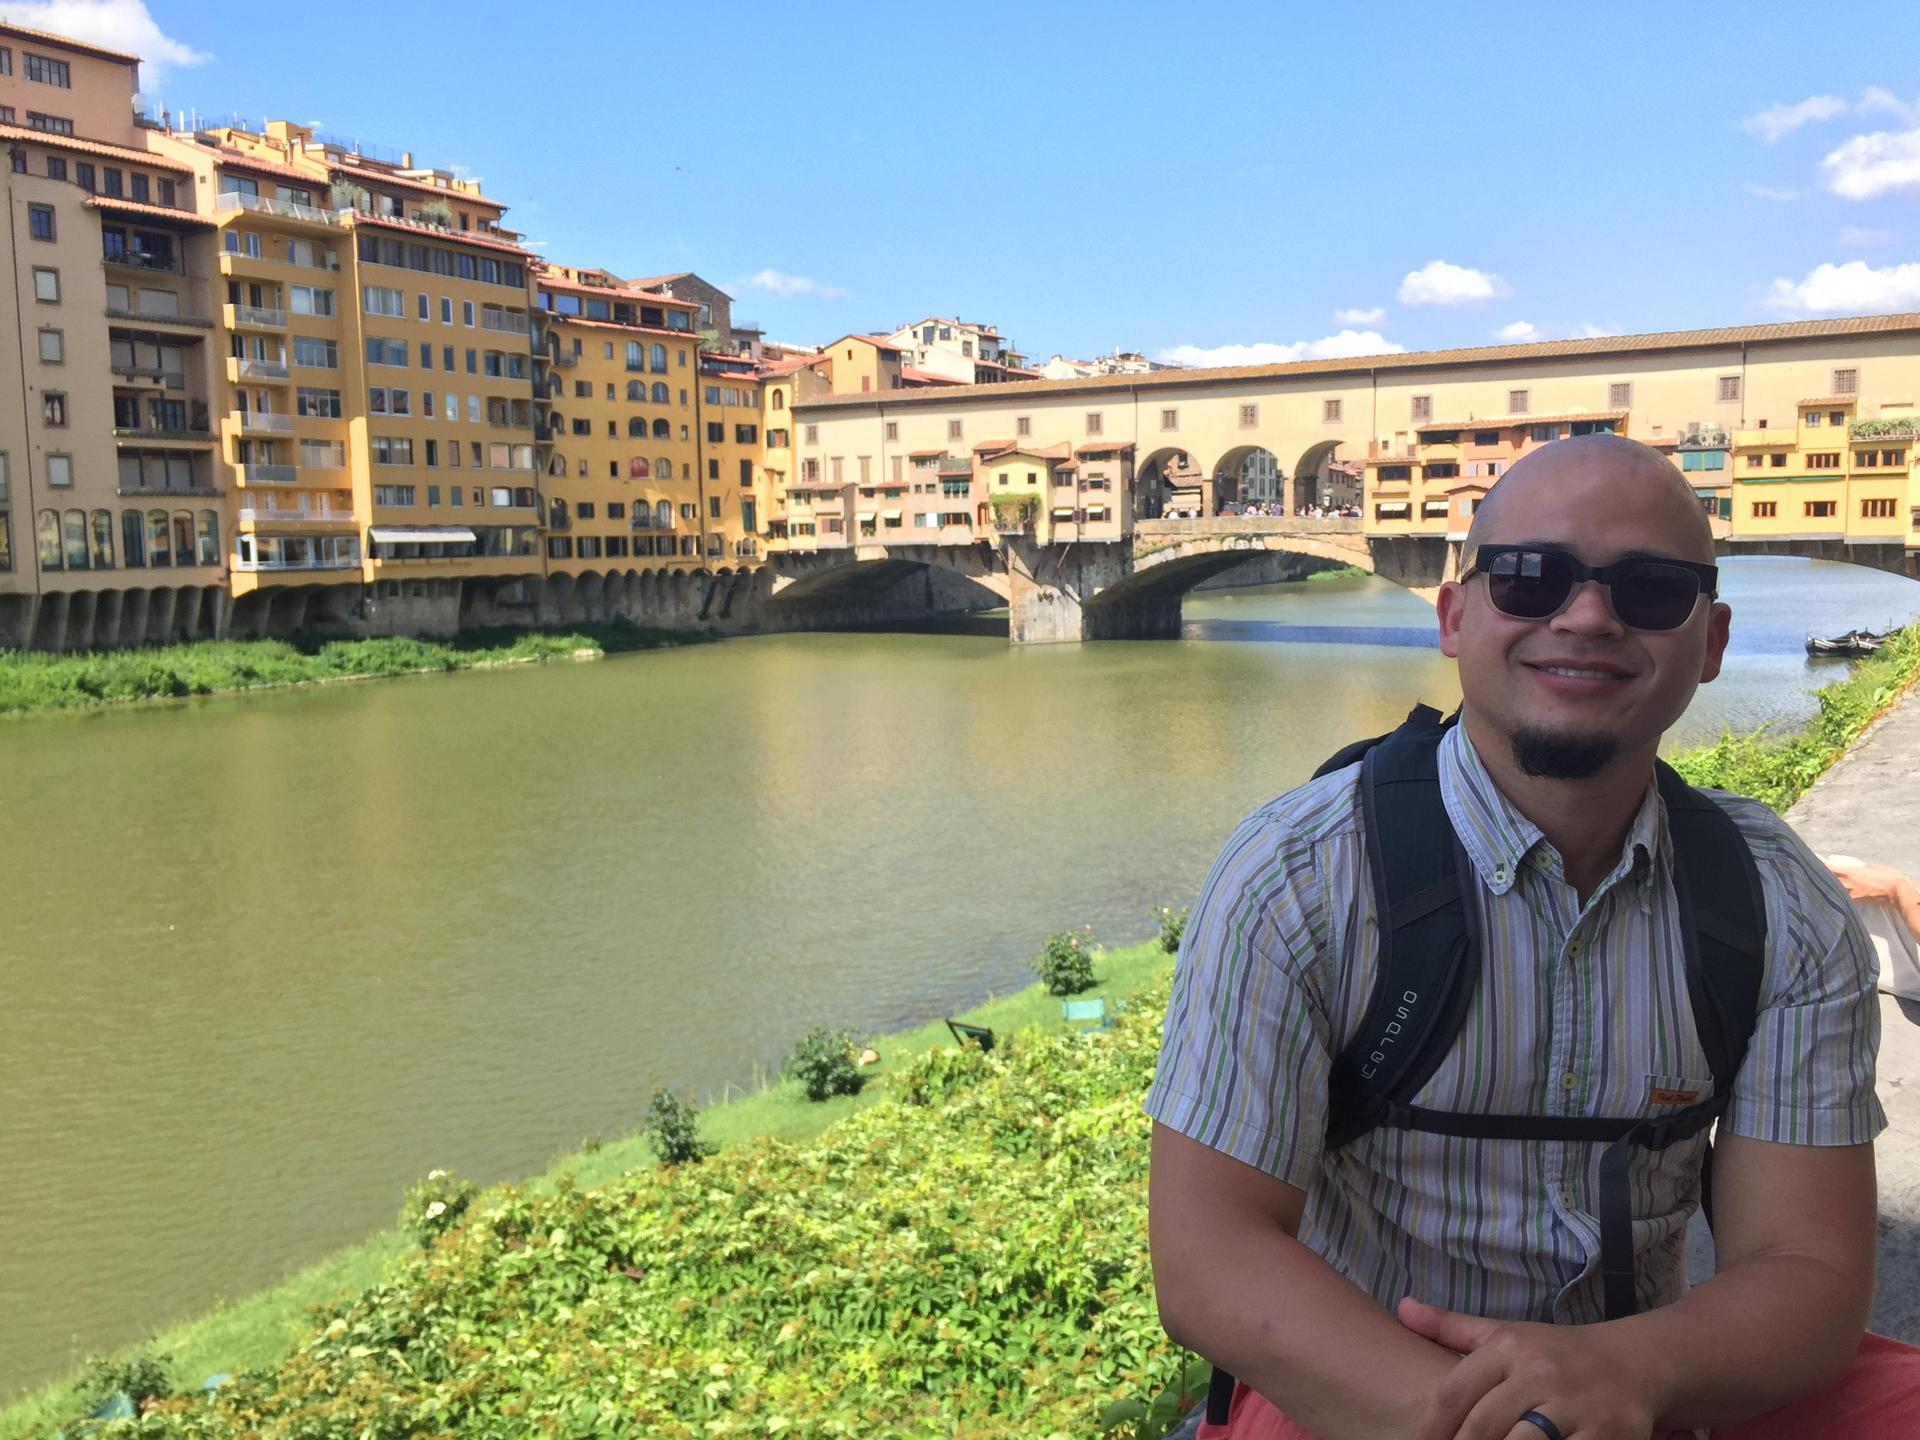 Mr. Palmer in front of a canal in Florence, Italy.